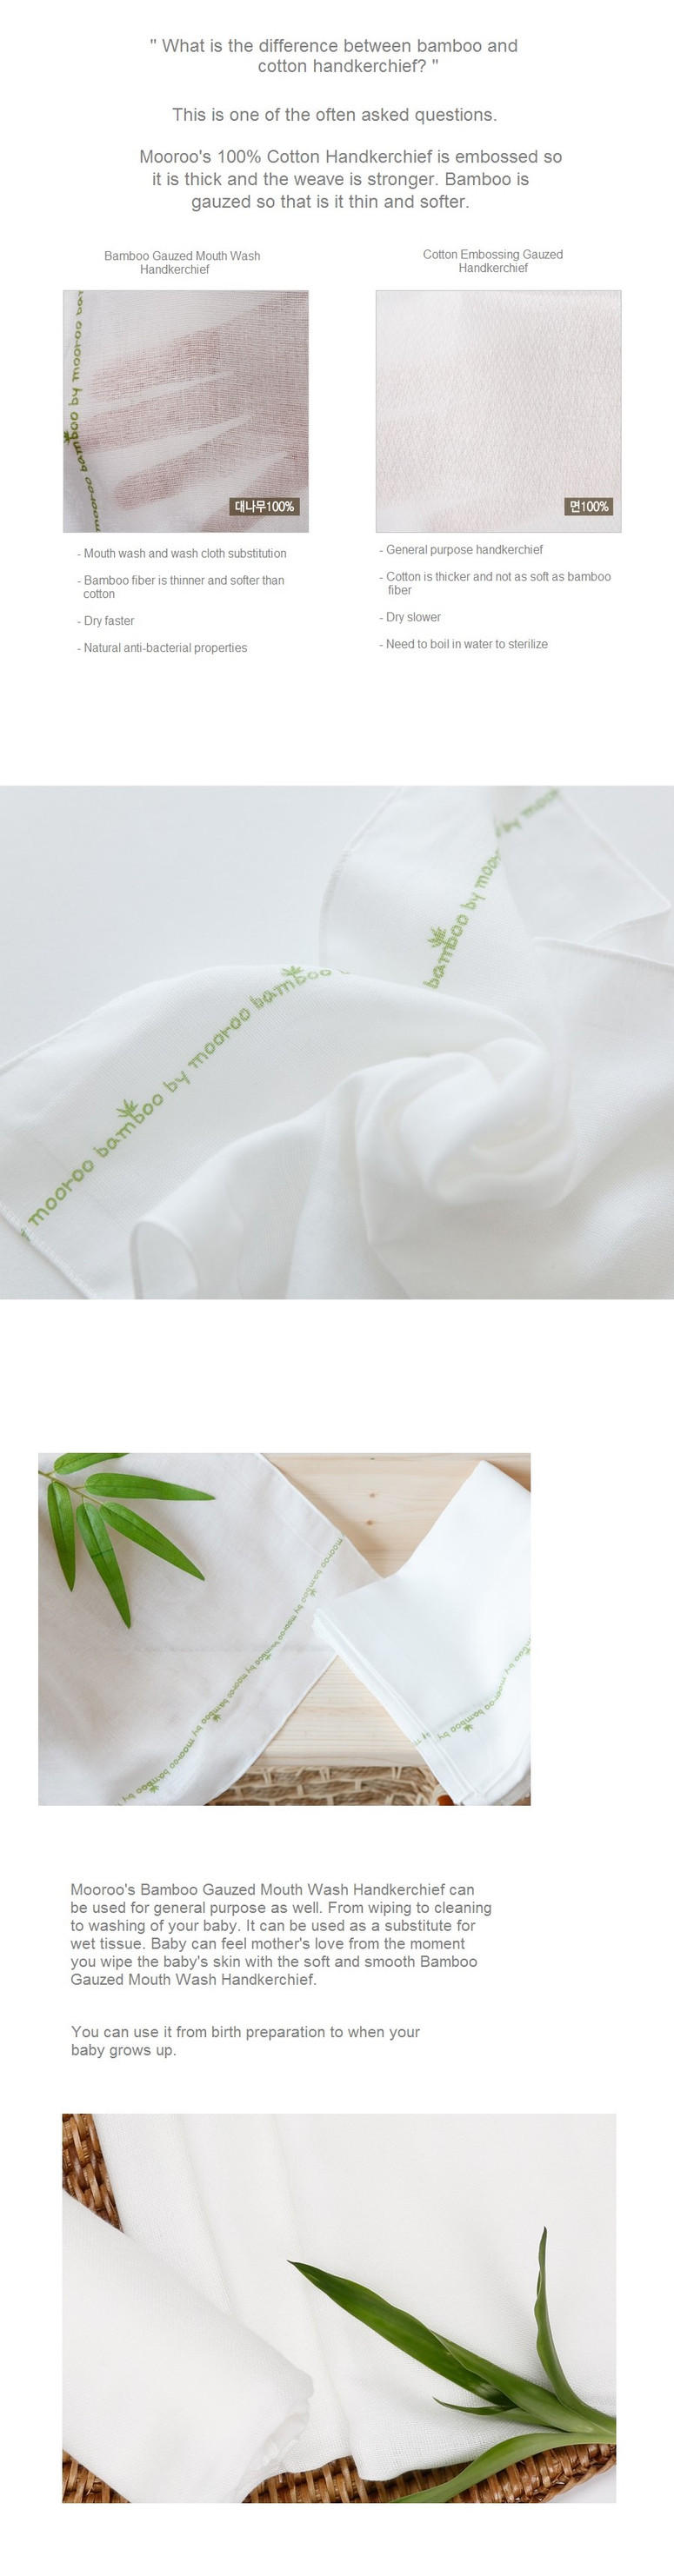 Bamboo Mouth Handkerchief 1-2.jpg